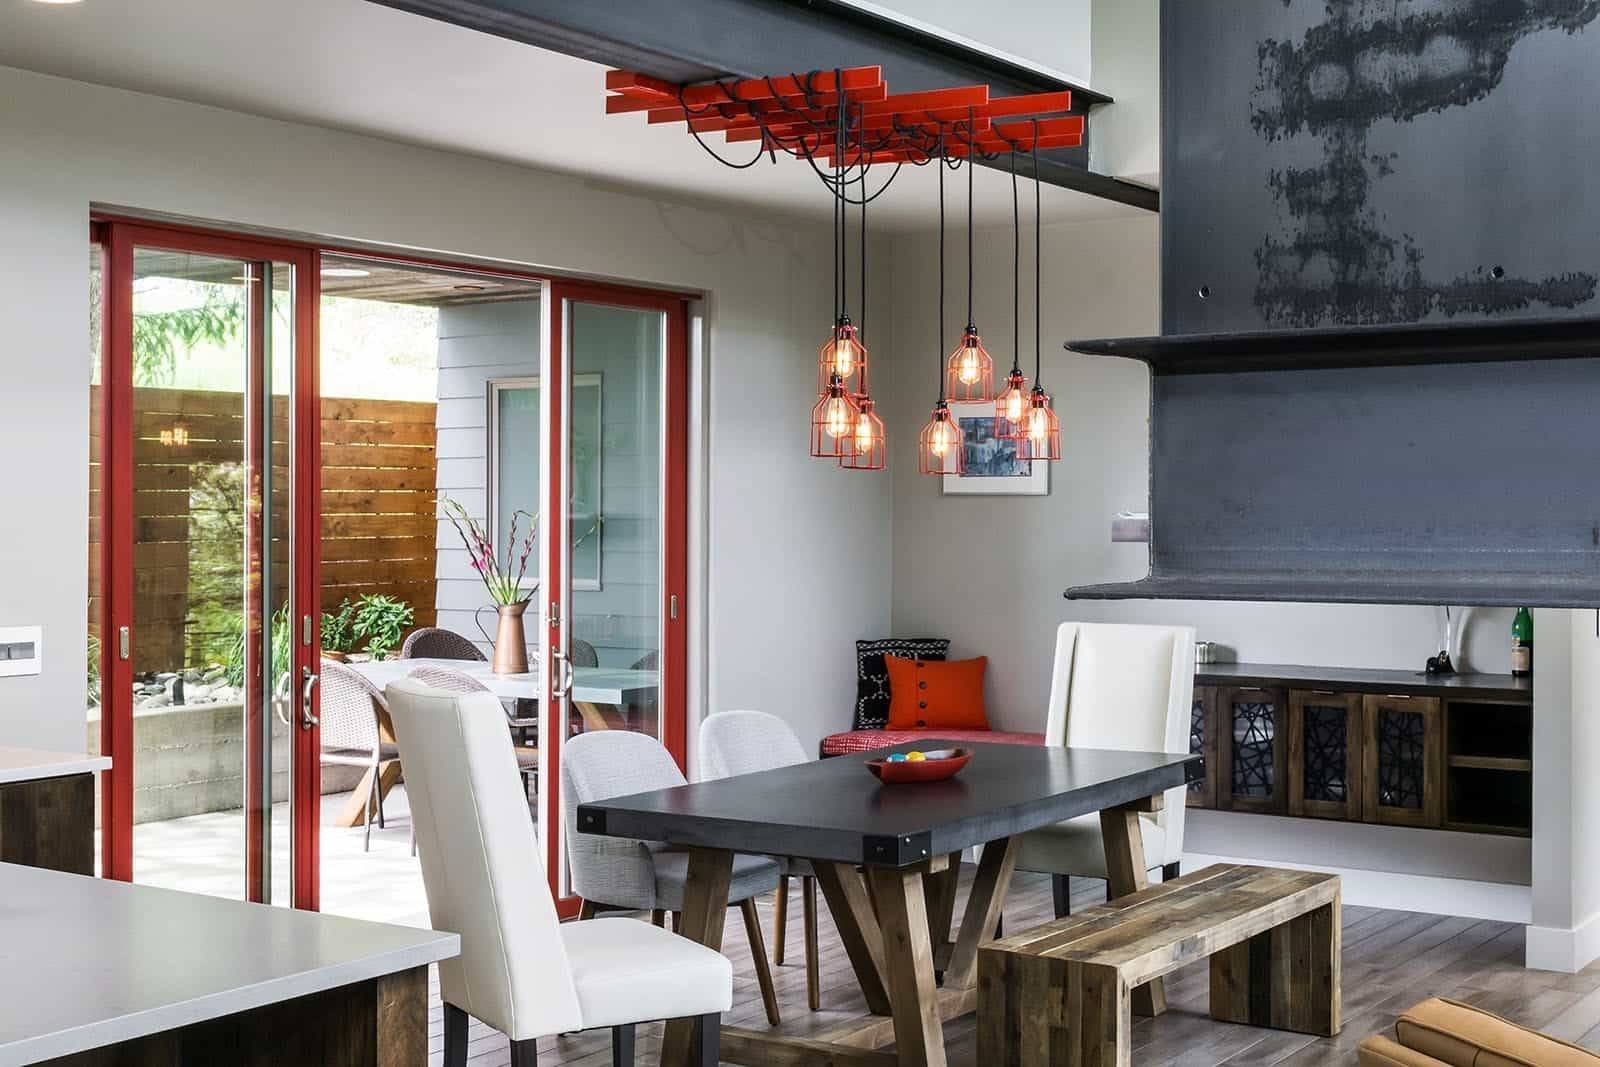 Industrial Sliding Glass Door For Contemporary Dining Room With Rustic Industrial Furniture (Image 10 of 27)